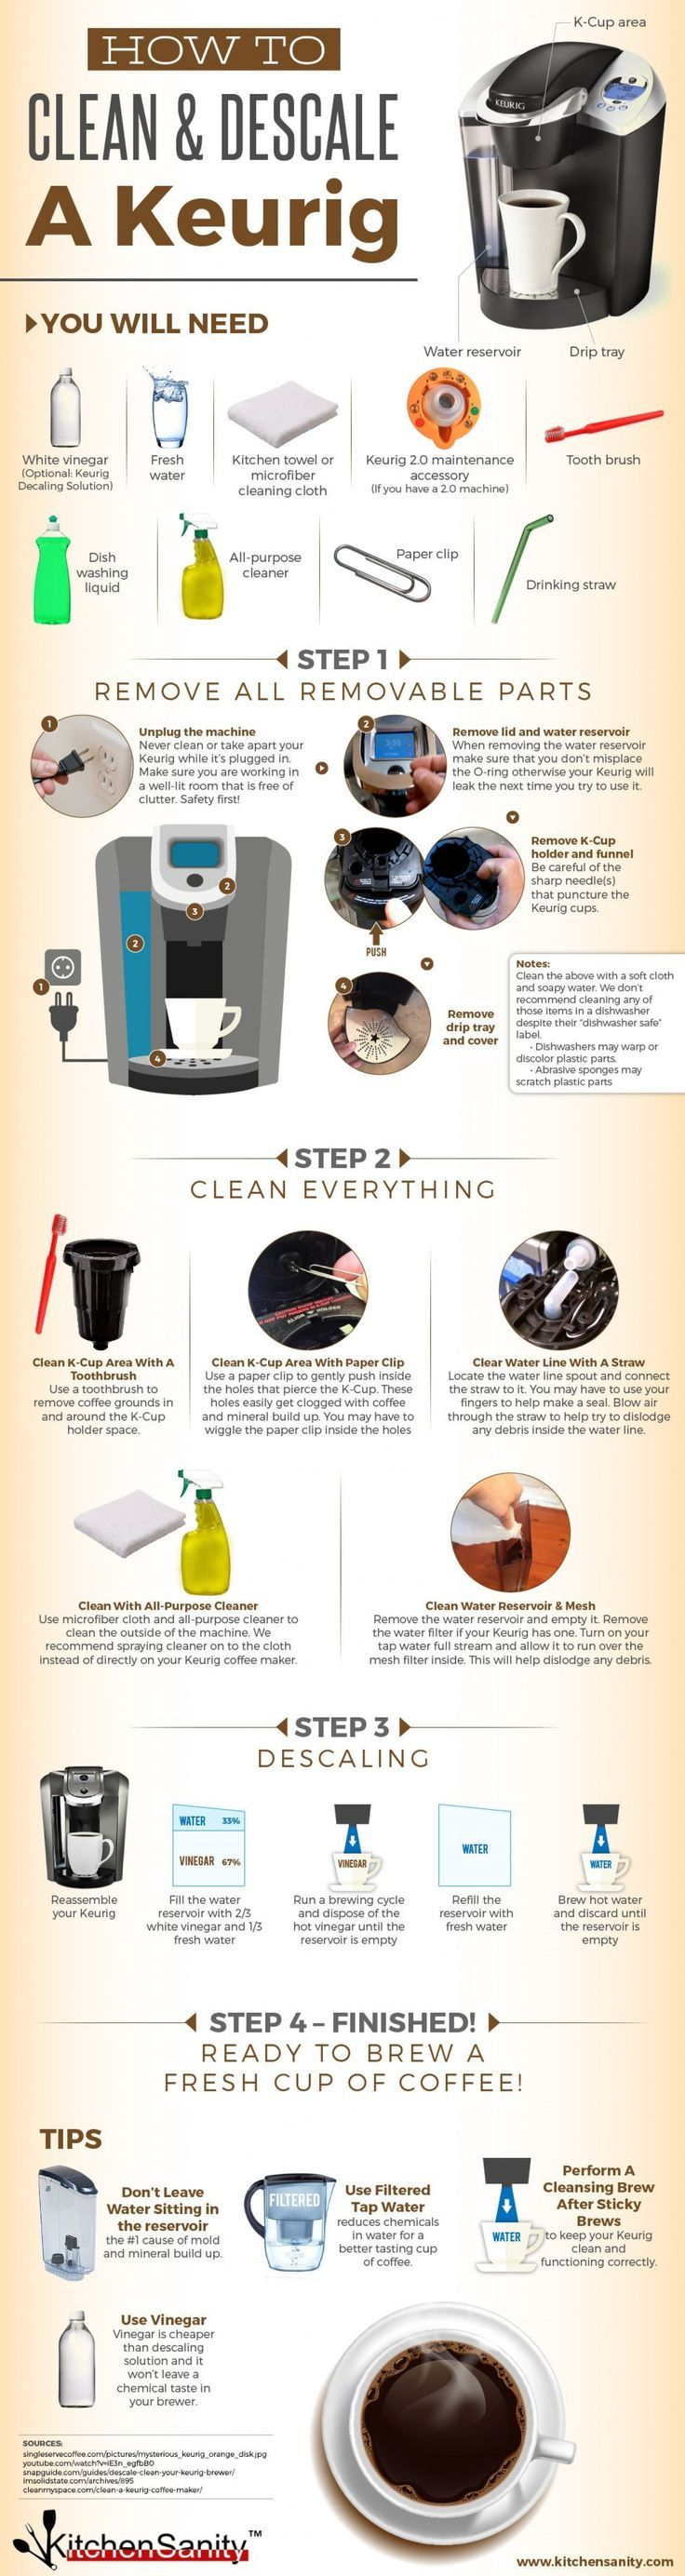 best cleaning tips images on pinterest cleaning tips cleaning